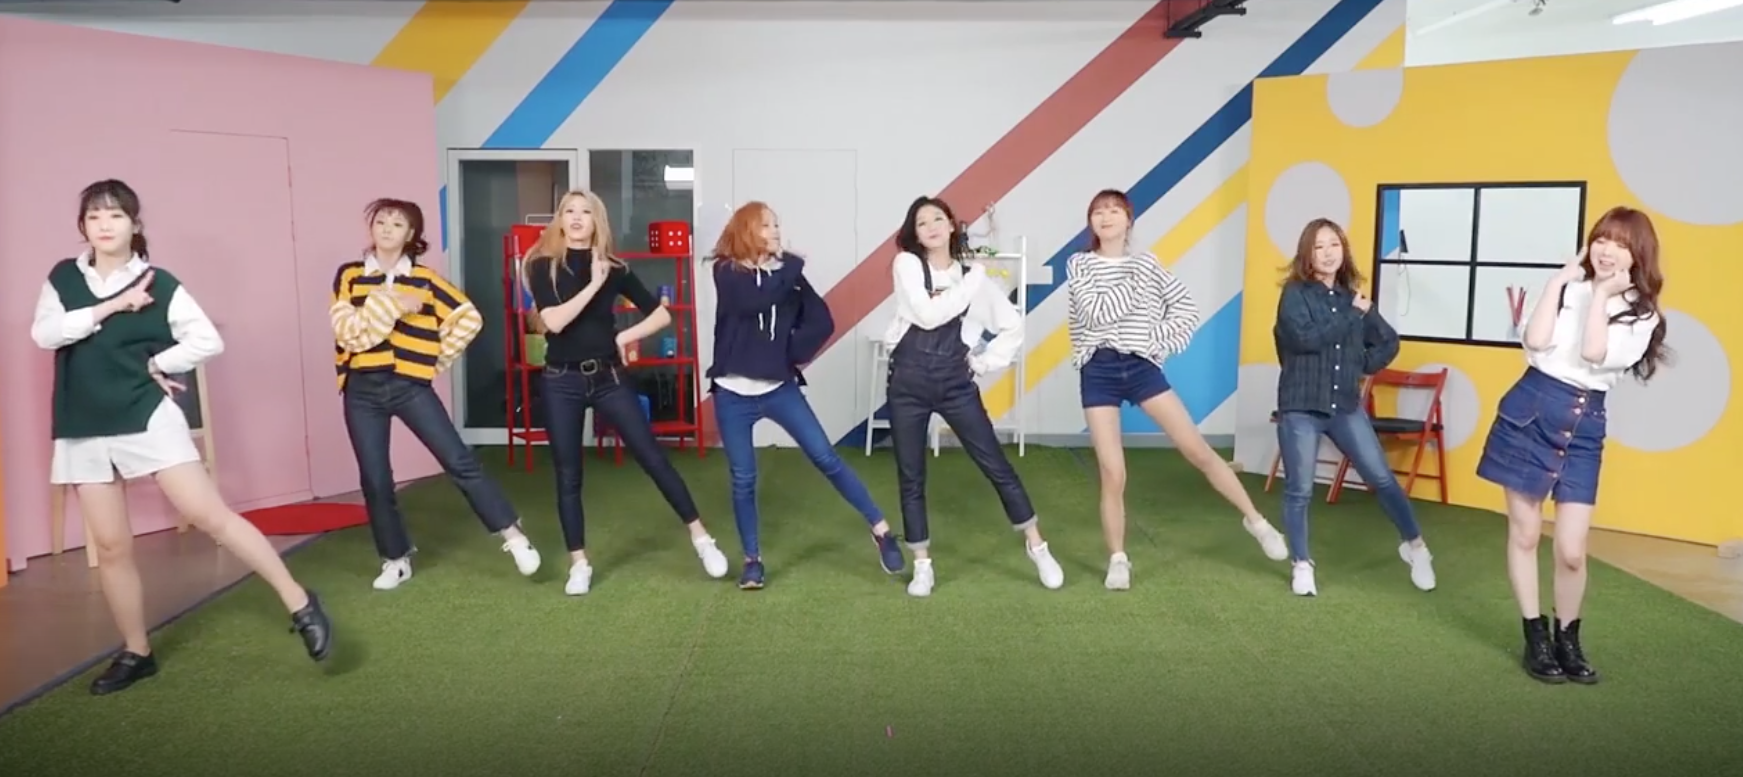 """Watch: Lovelyz Releases Dance Practice Video For """"WoW!"""" As Full 8-Member Group"""